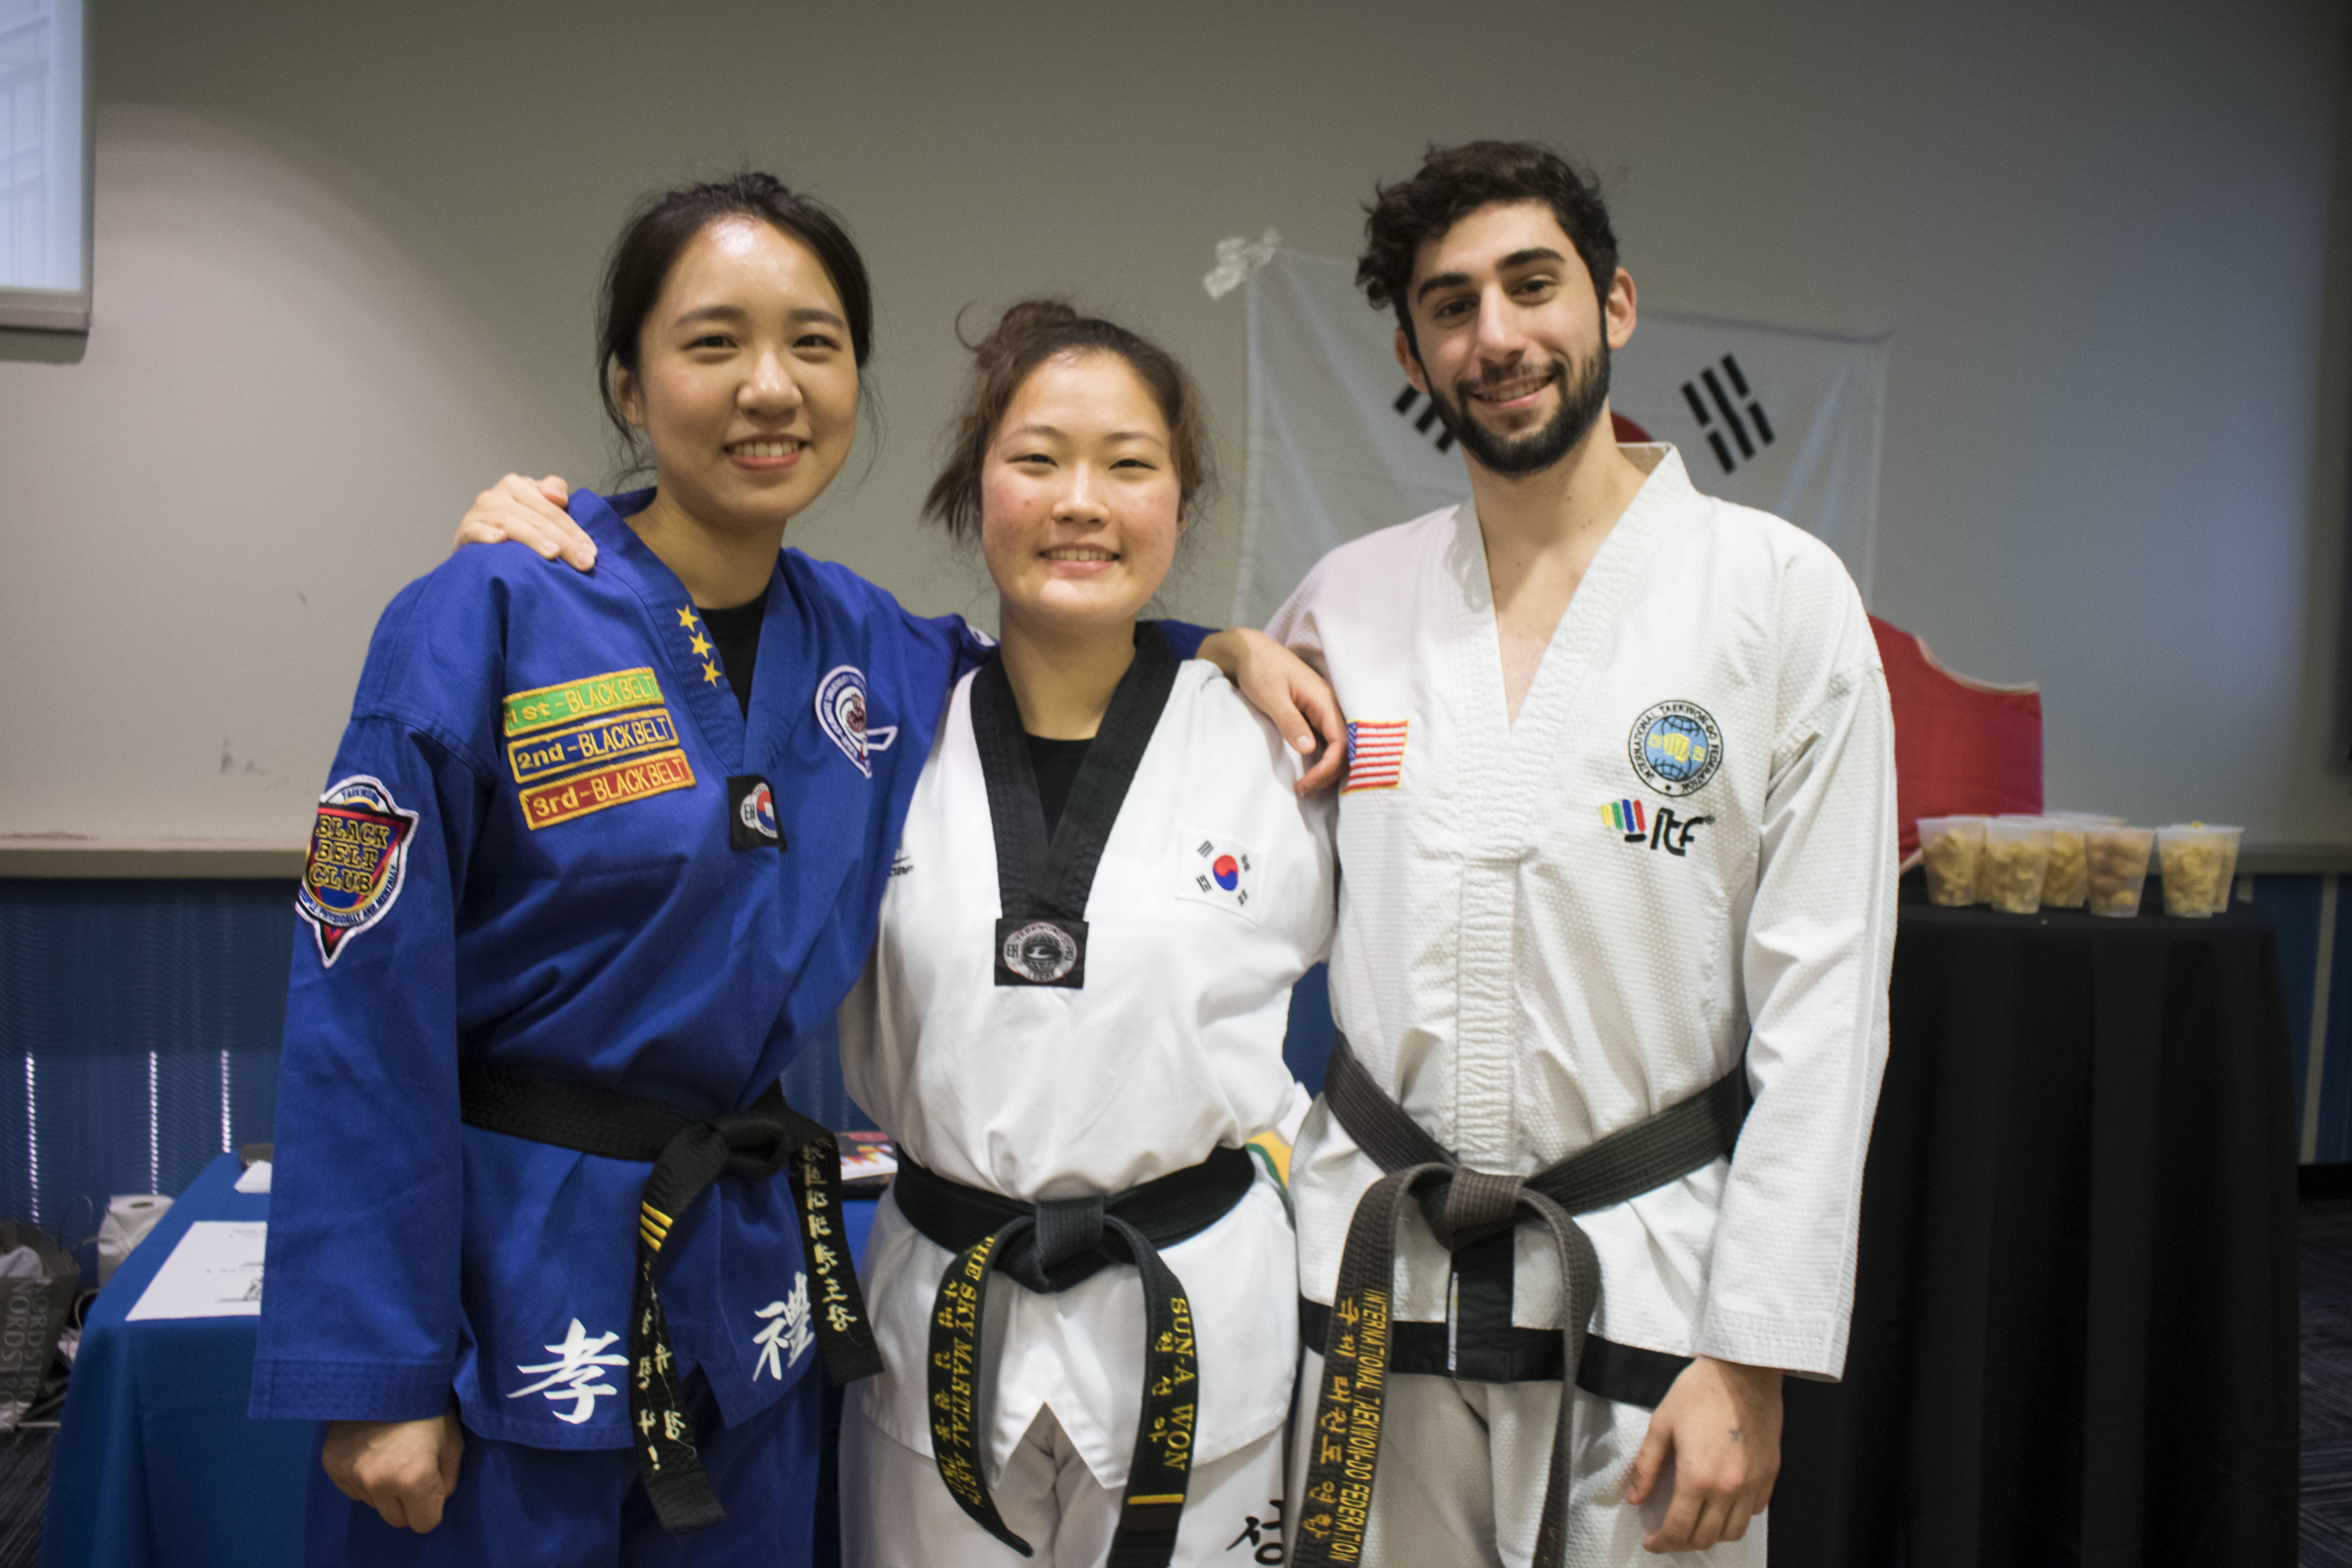 Students in martial arts robes  smiling